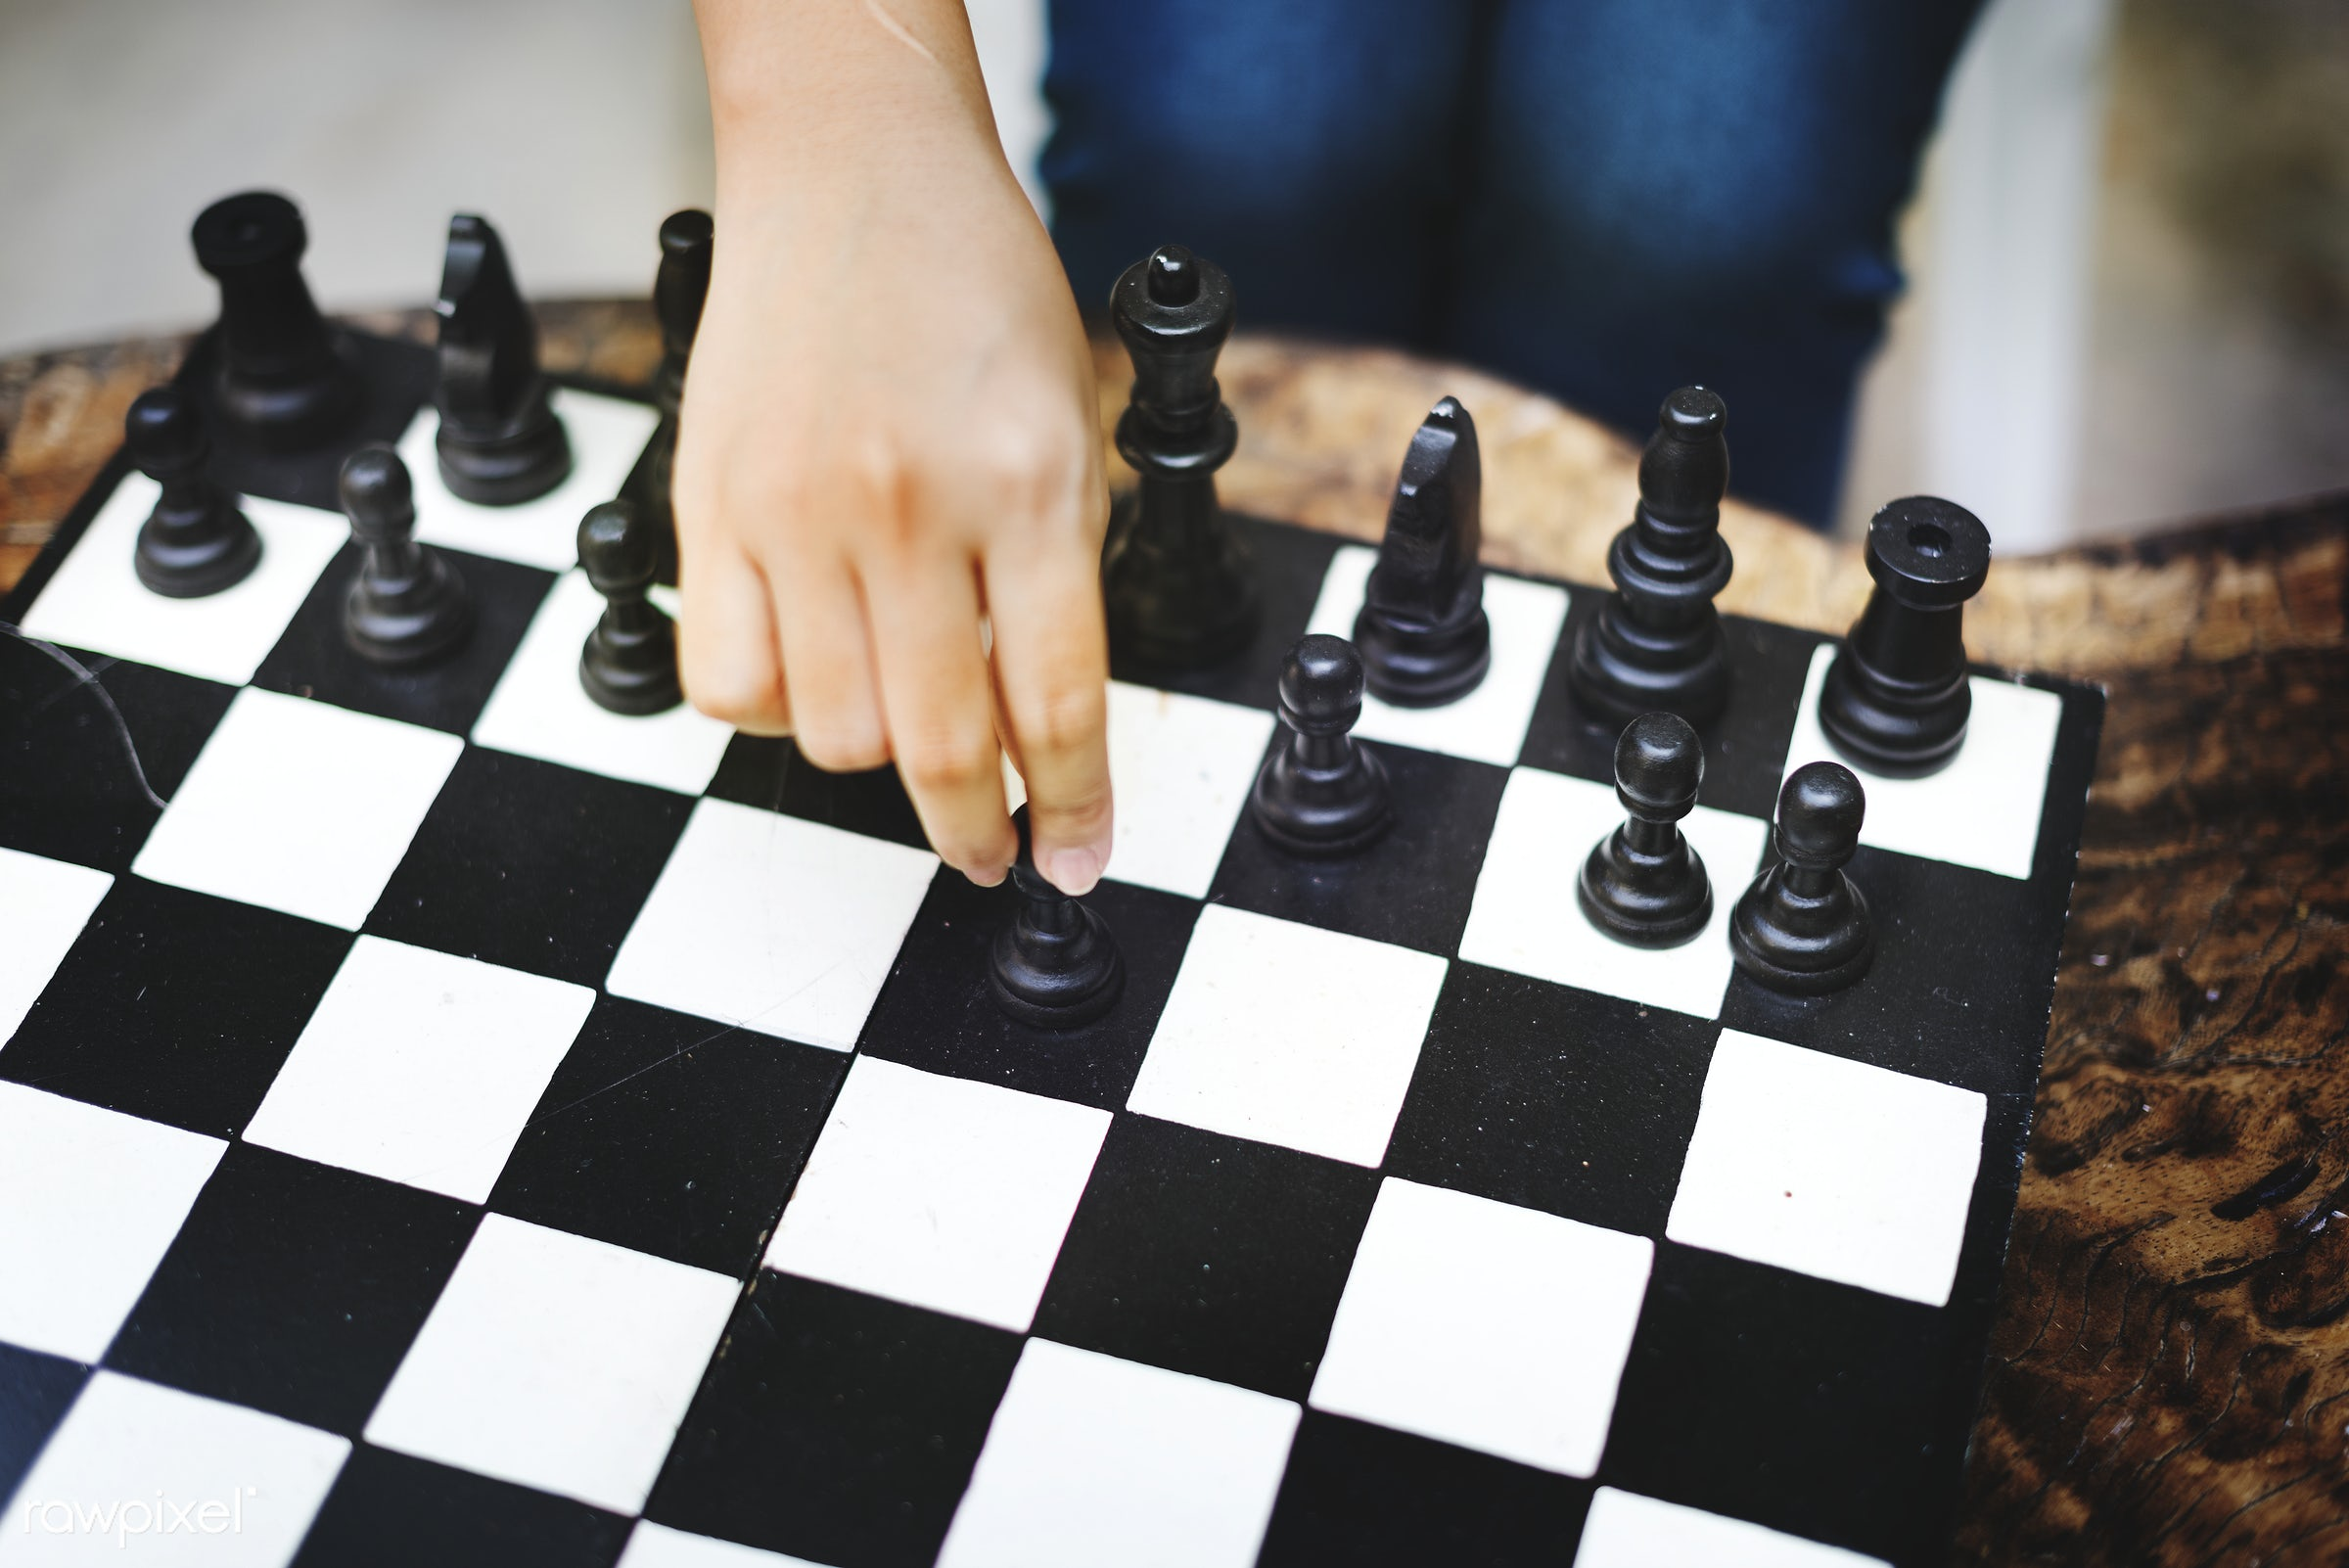 Solo chess playing - game, challenge, activity, black, black and white, board, checkered, chess, chessboard, clever, close-...